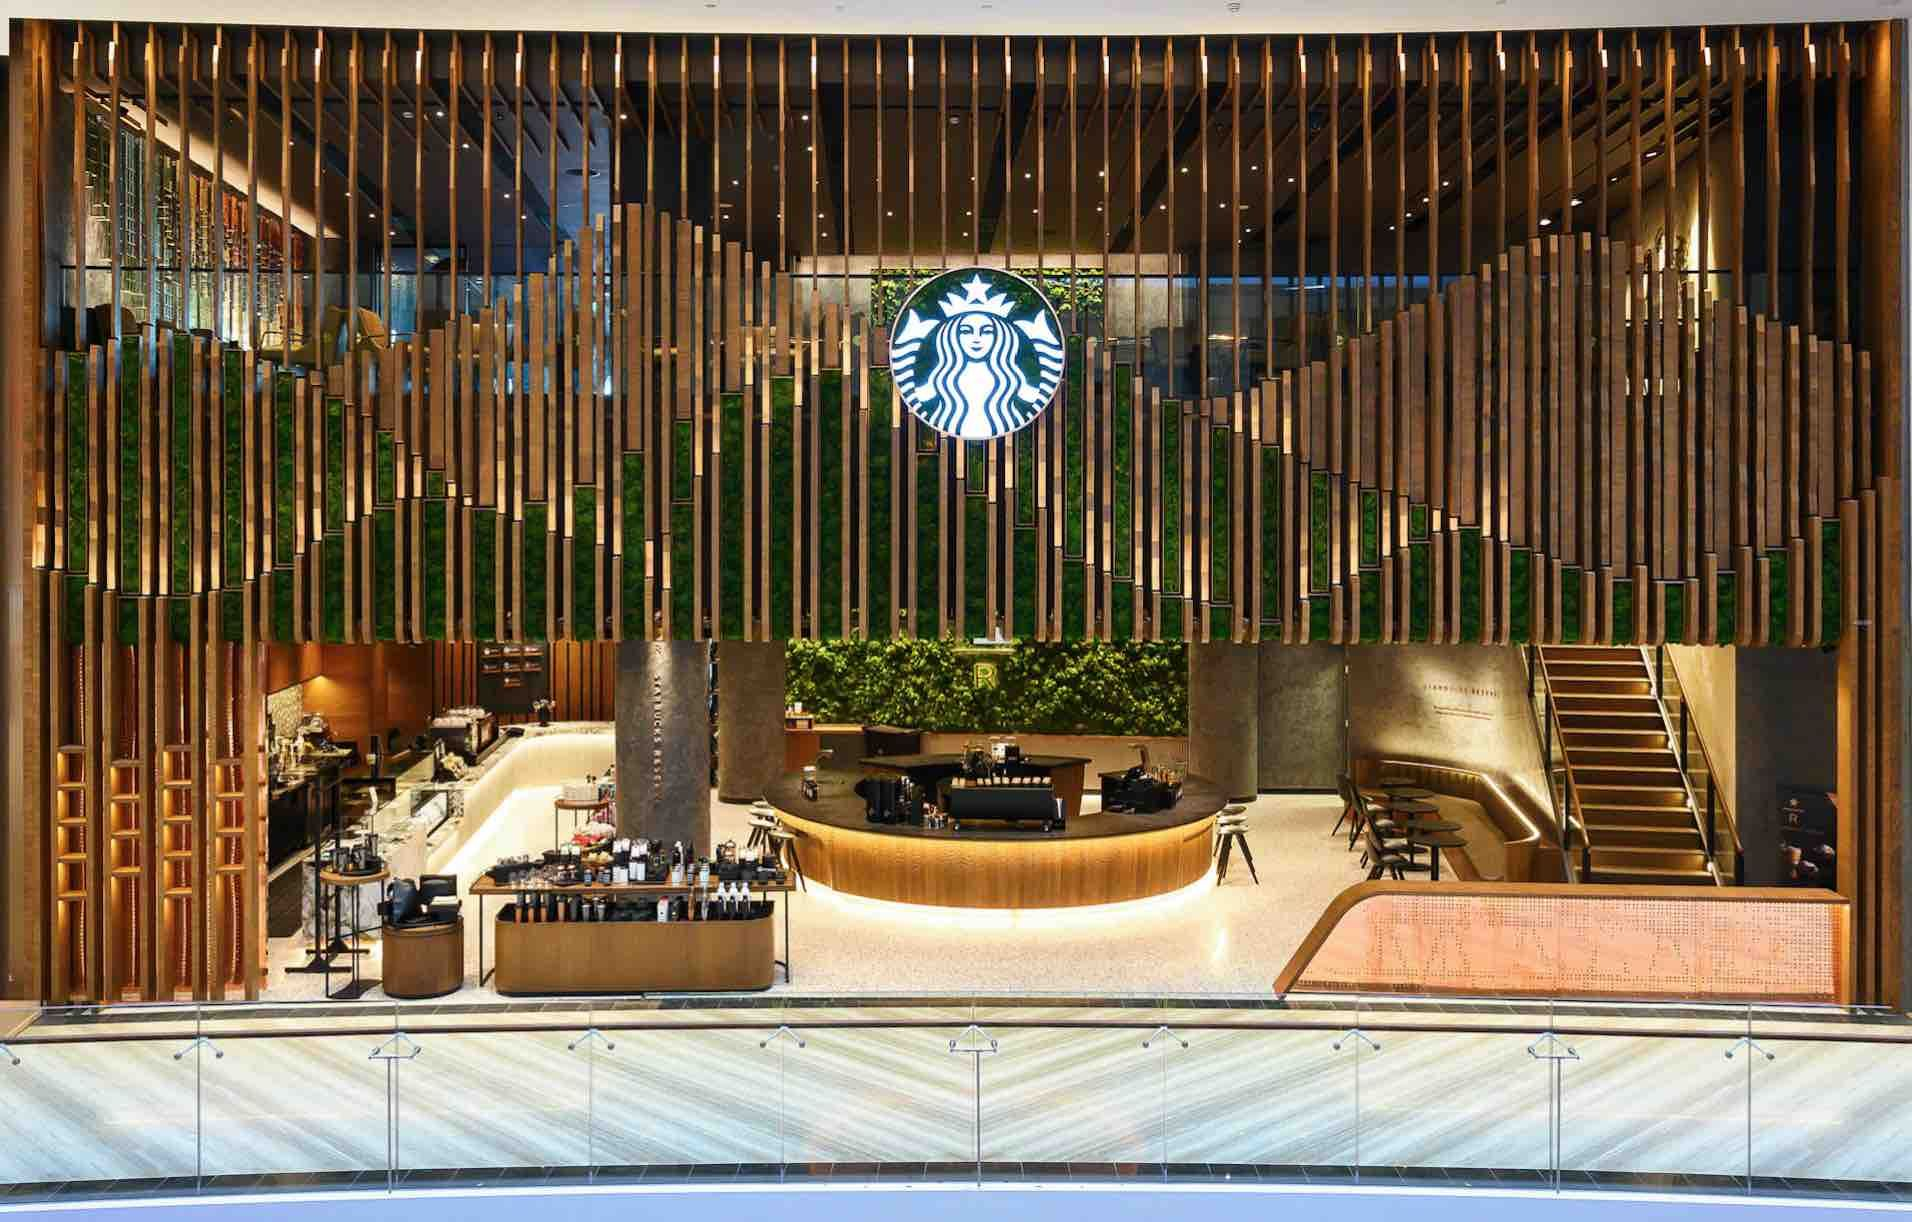 Starbucks Jewel Changi Airport Singapore Flagship With Local Surprises Changi Starbucks Changi Airport Singapore